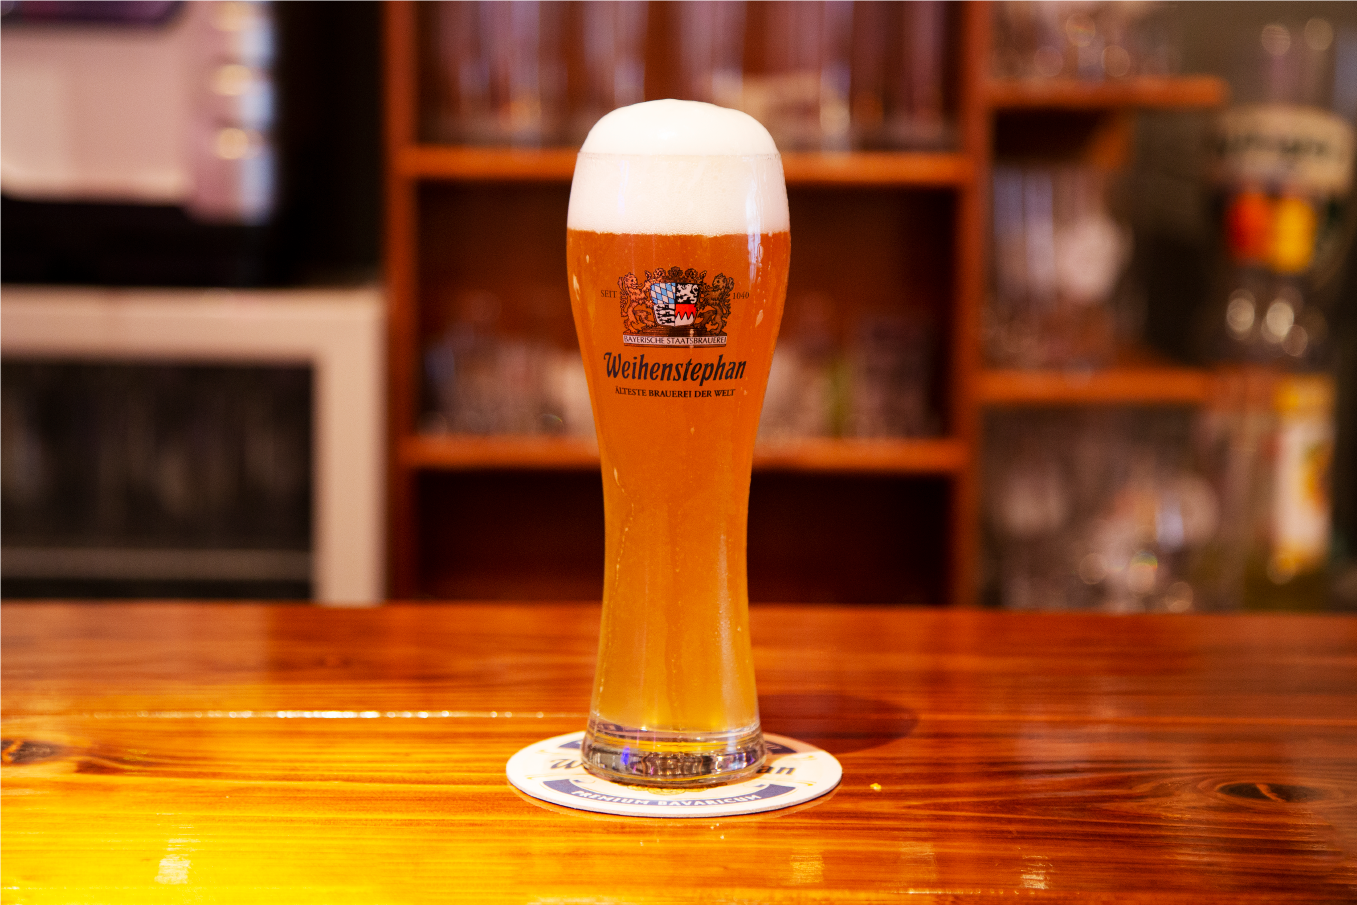 「THE BEER HOUSE」さんで飲んだビールは感動の連続だった!